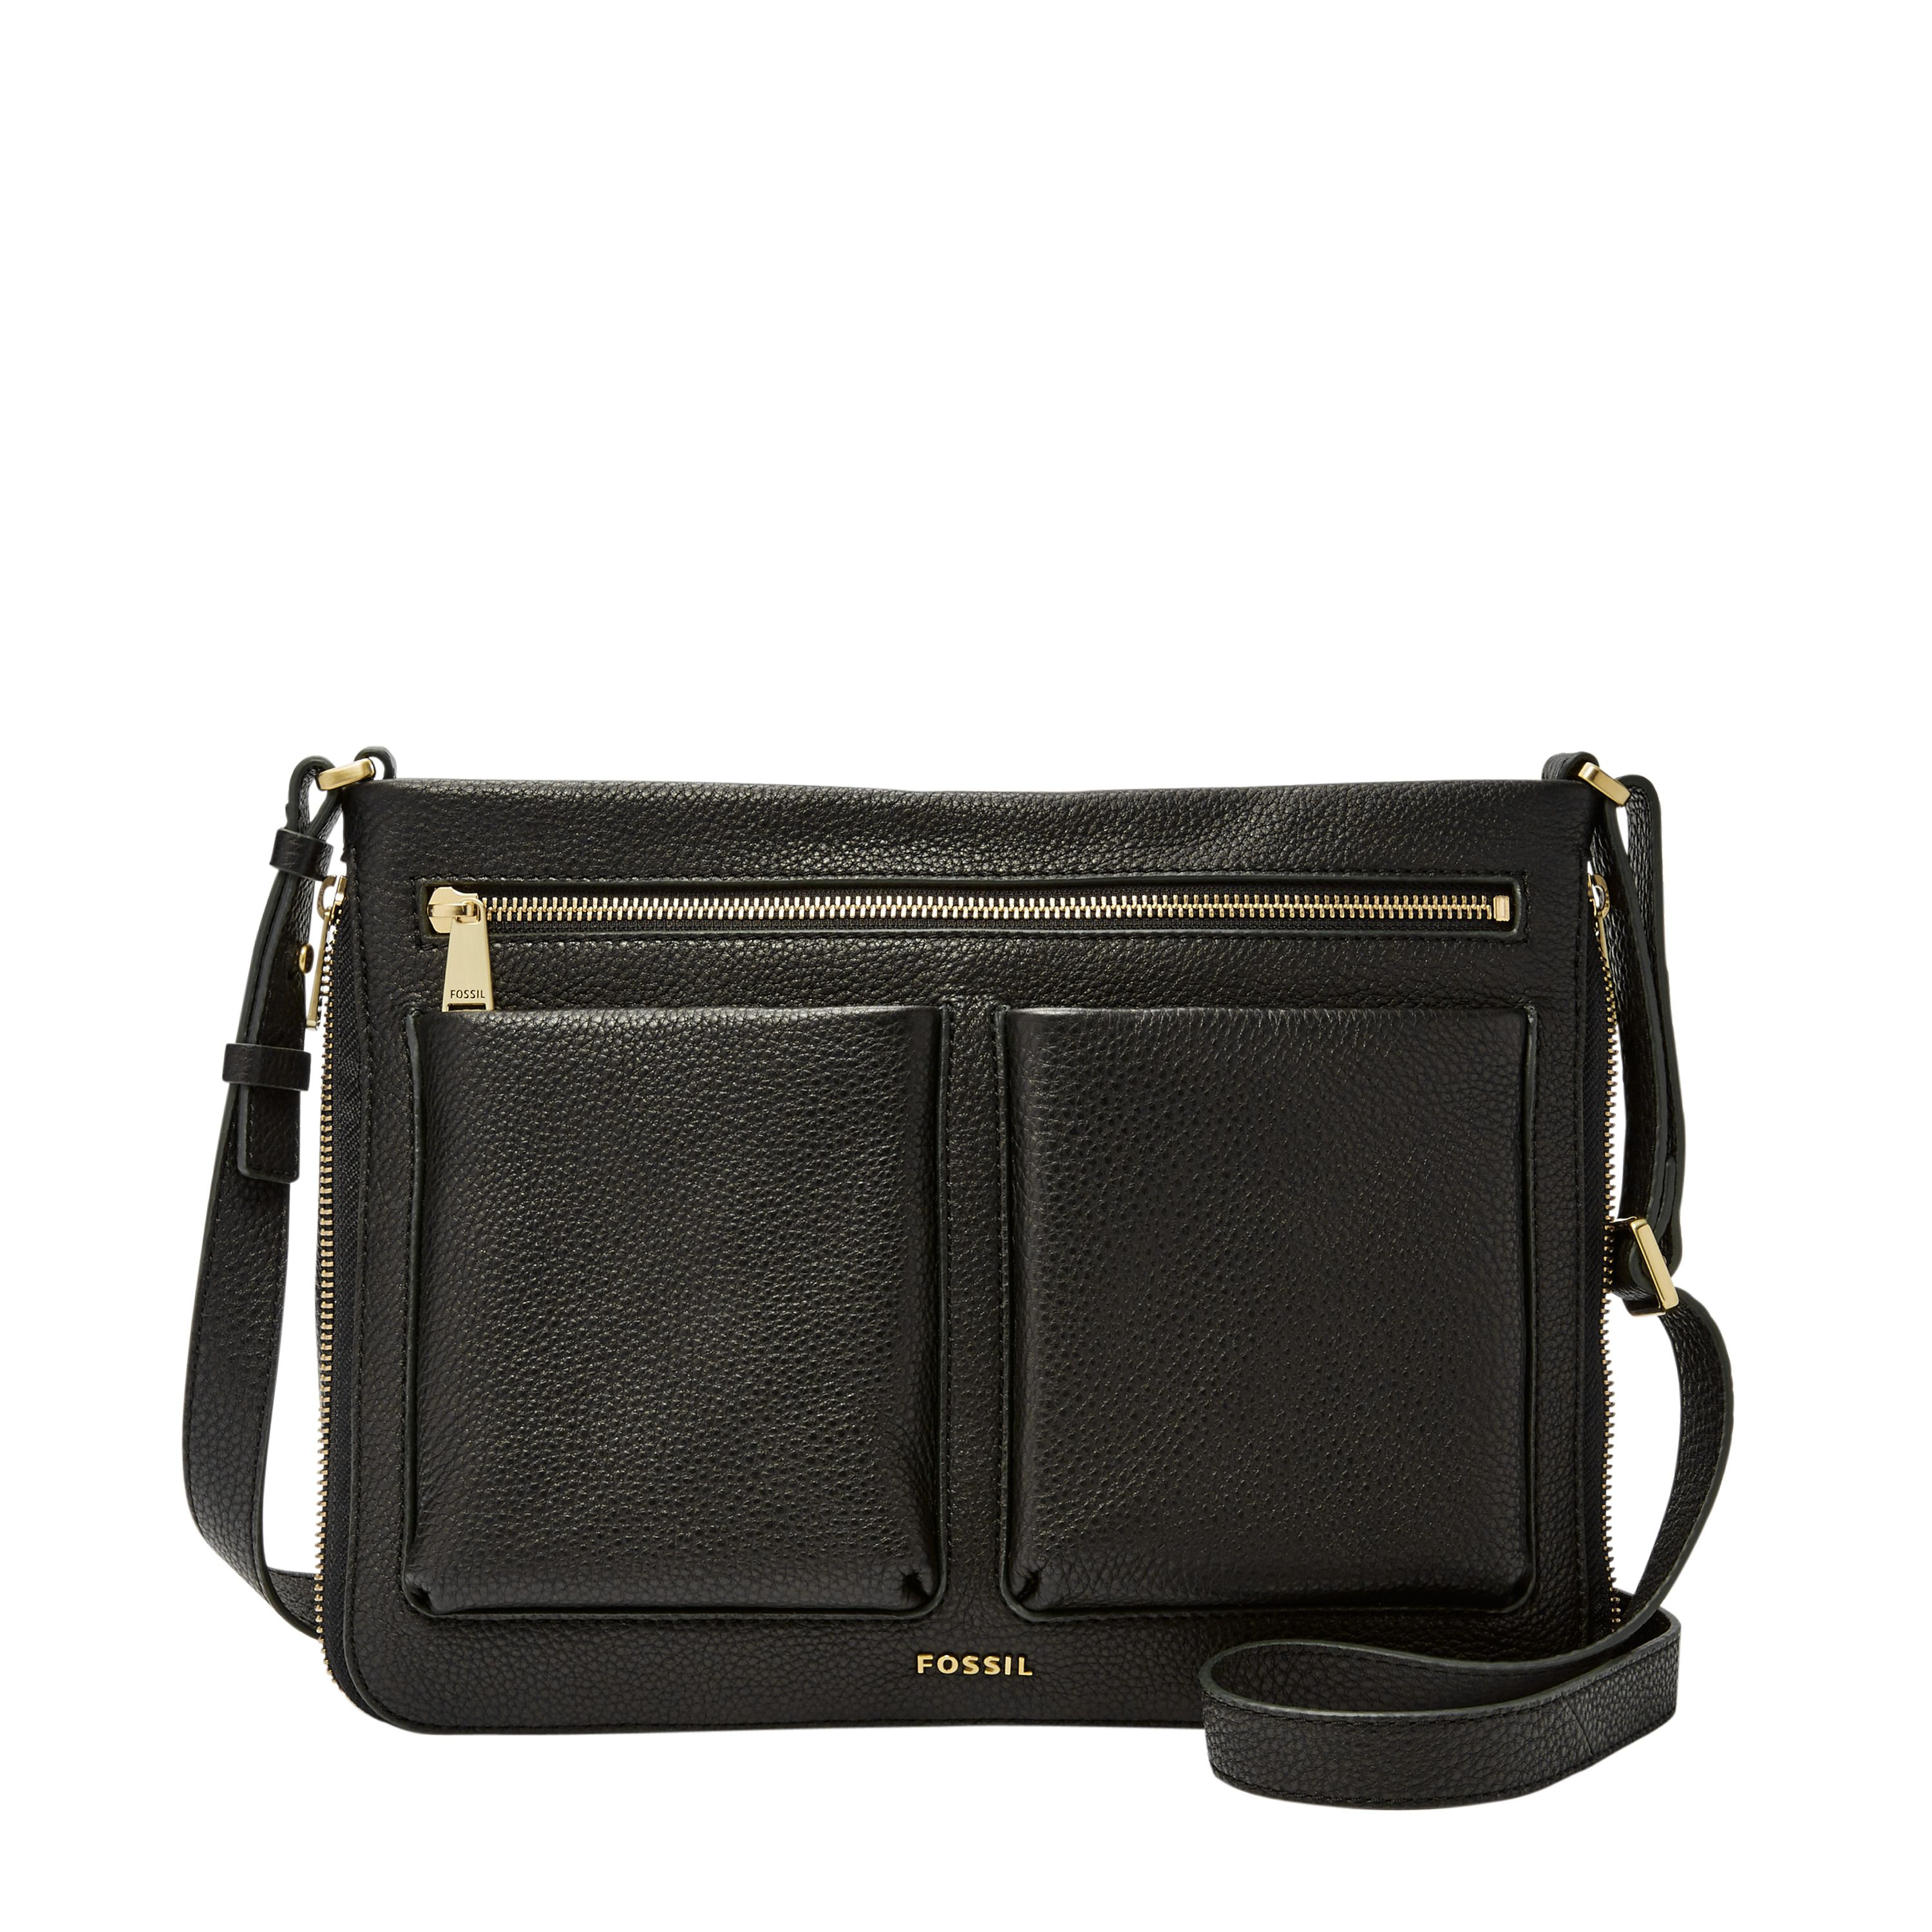 Fossil Piper small crossbody Black